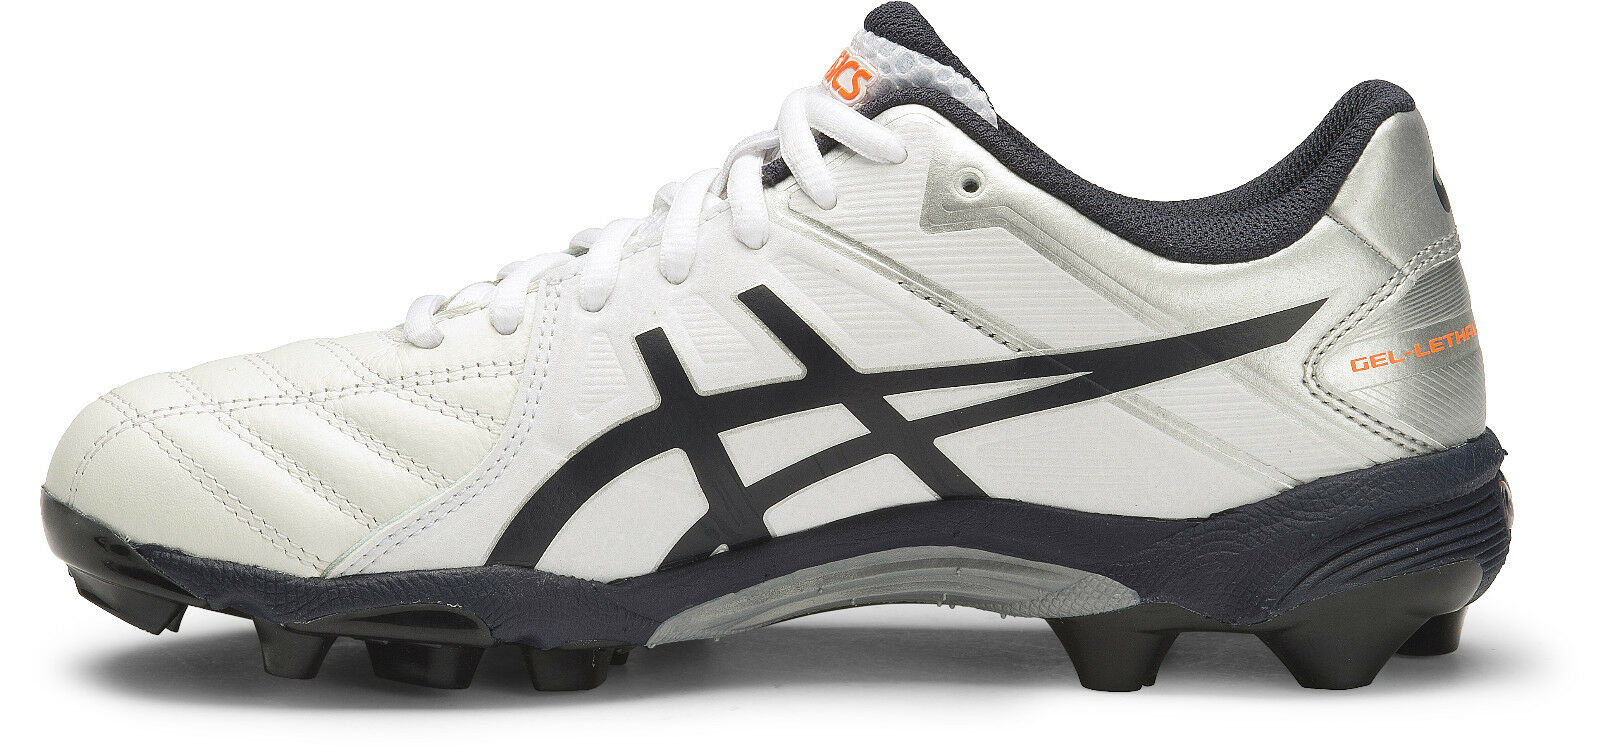 Asics Gel Lethal Ultimate (0150) GS 12 Kids Football Schuhes (0150) Ultimate + Free Aus Delivery ae0f5f